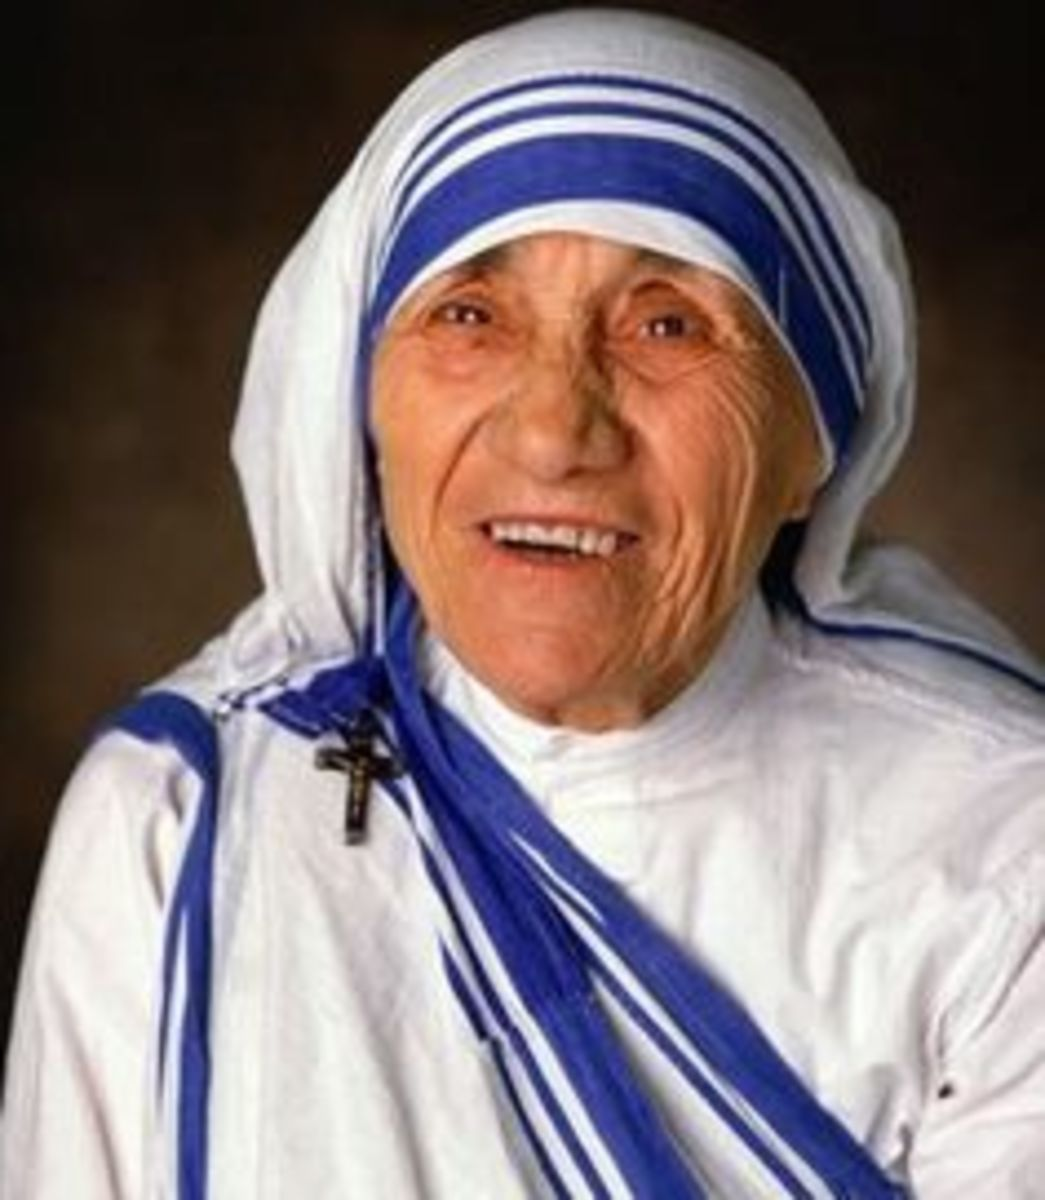 What can we learn from Mother Theresa?